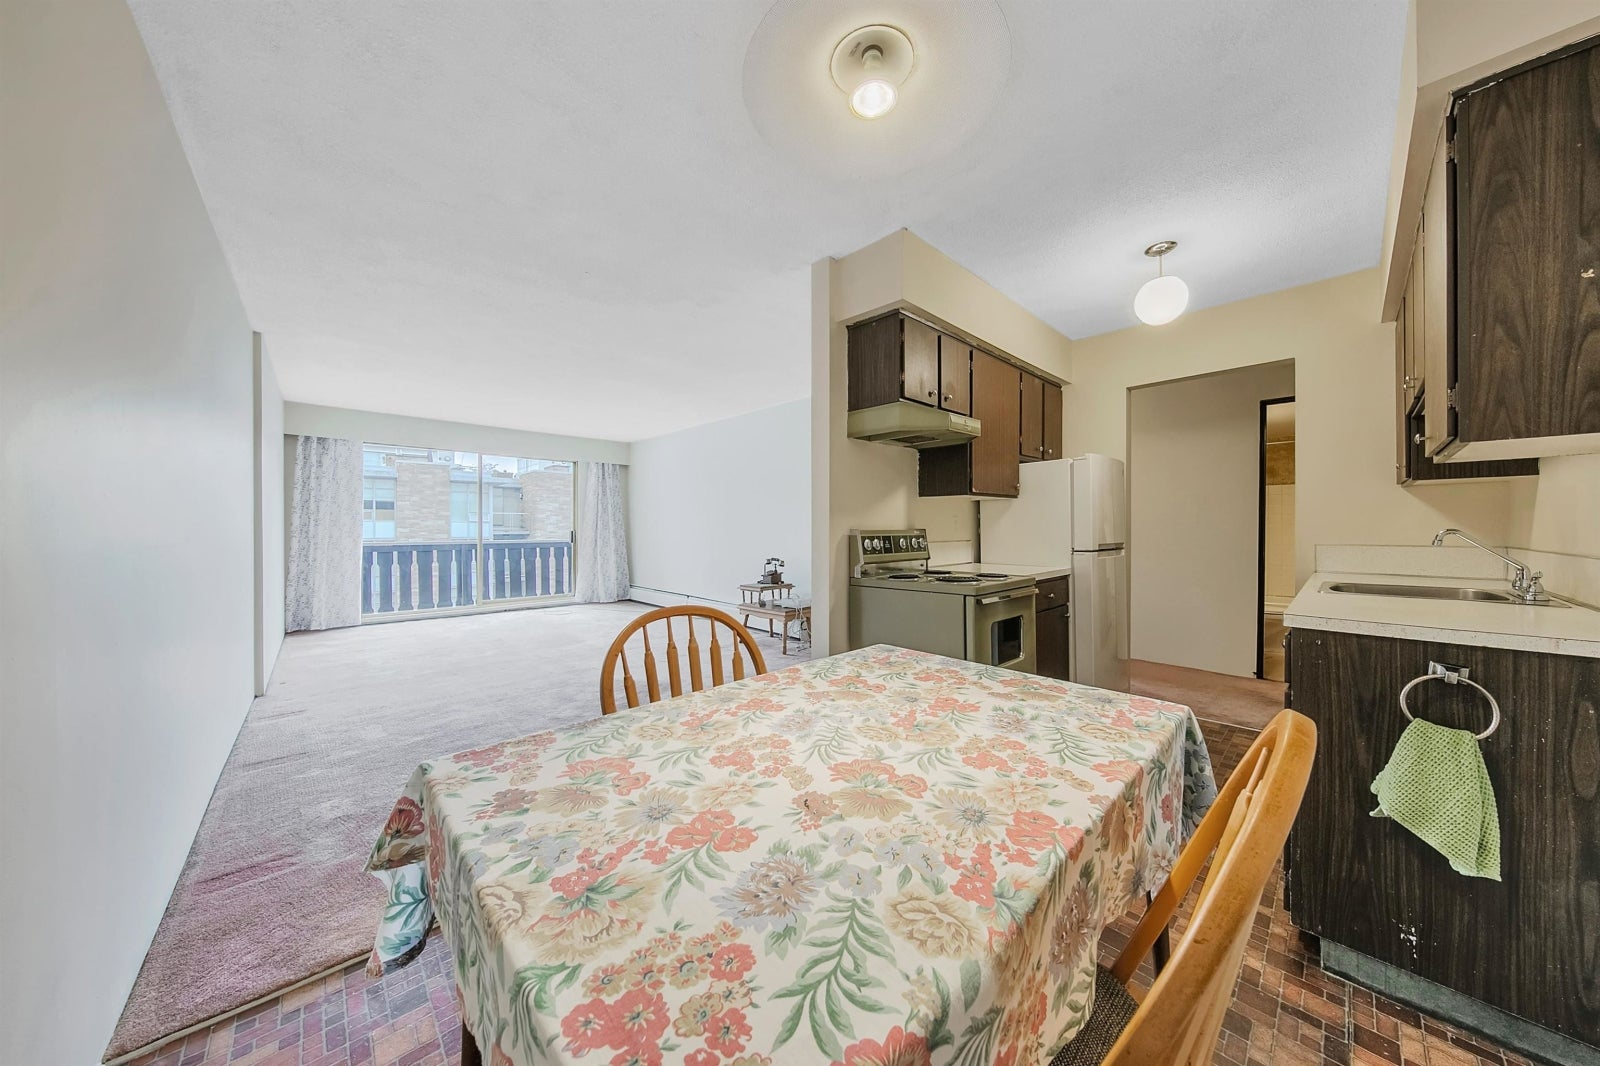 306 1345 CHESTERFIELD AVENUE - Central Lonsdale Apartment/Condo for sale, 1 Bedroom (R2622121) #15